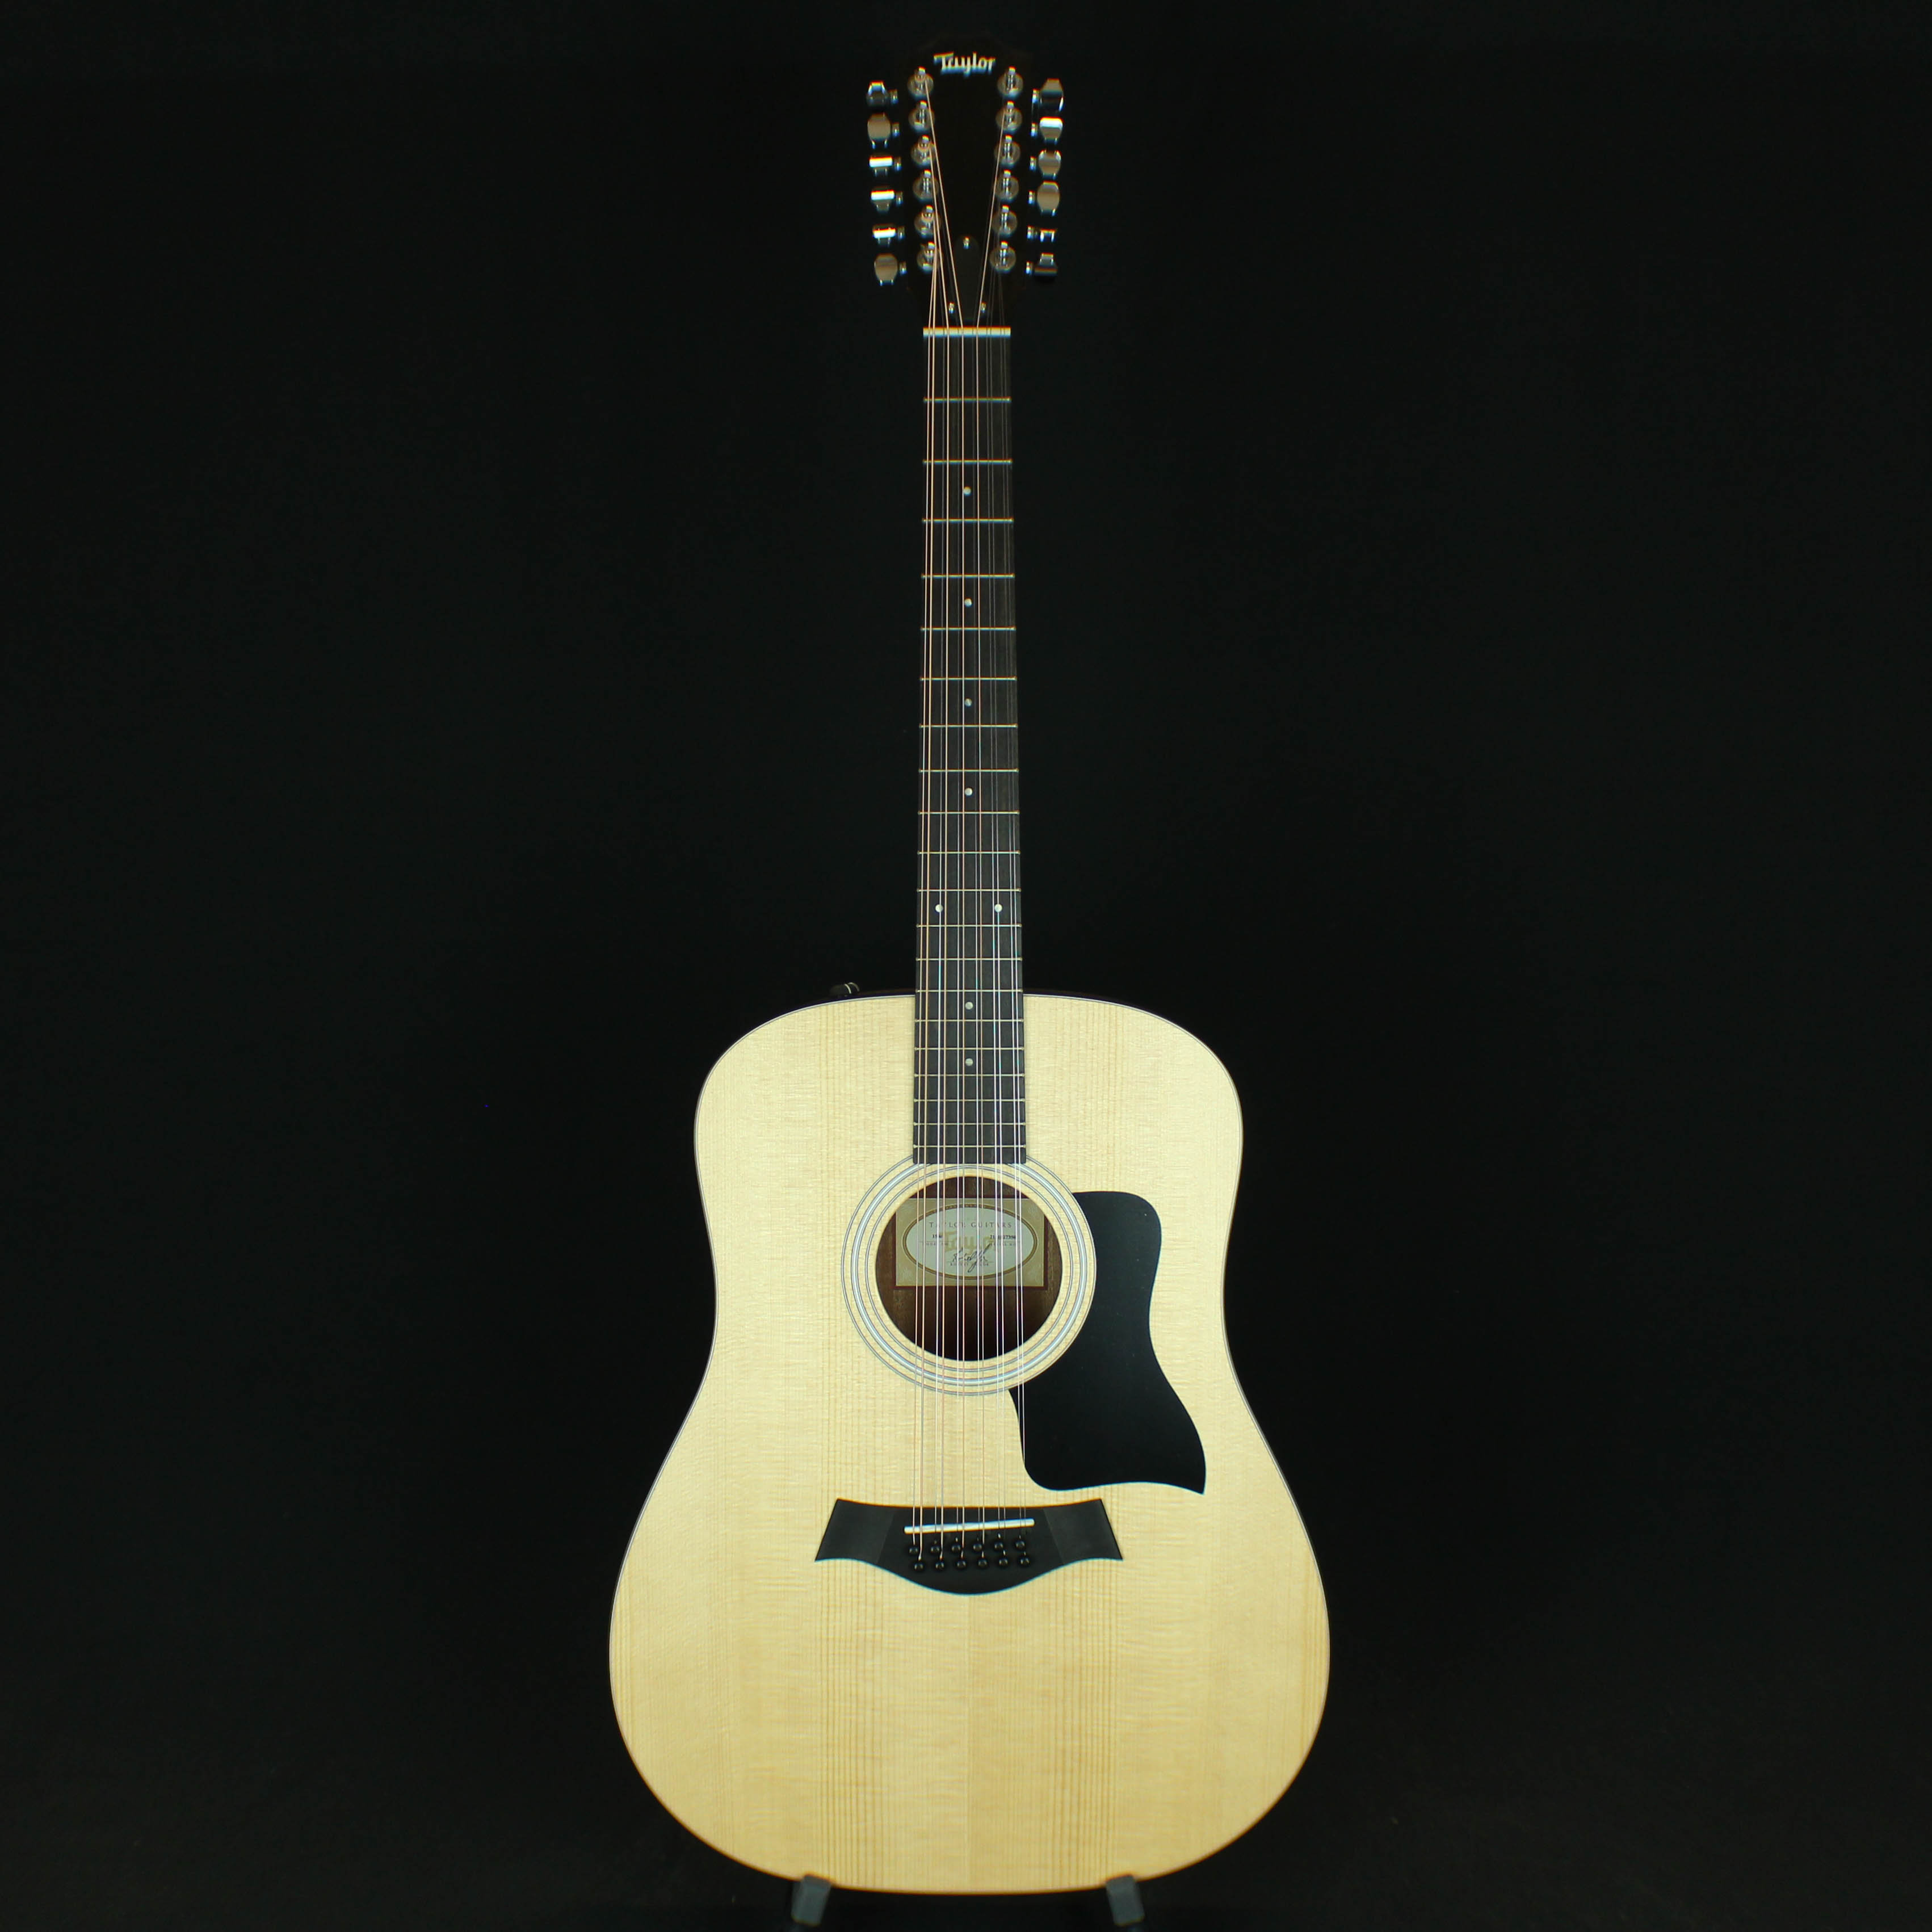 Taylor 150E 12-String Dreadnought Acoustic Electric